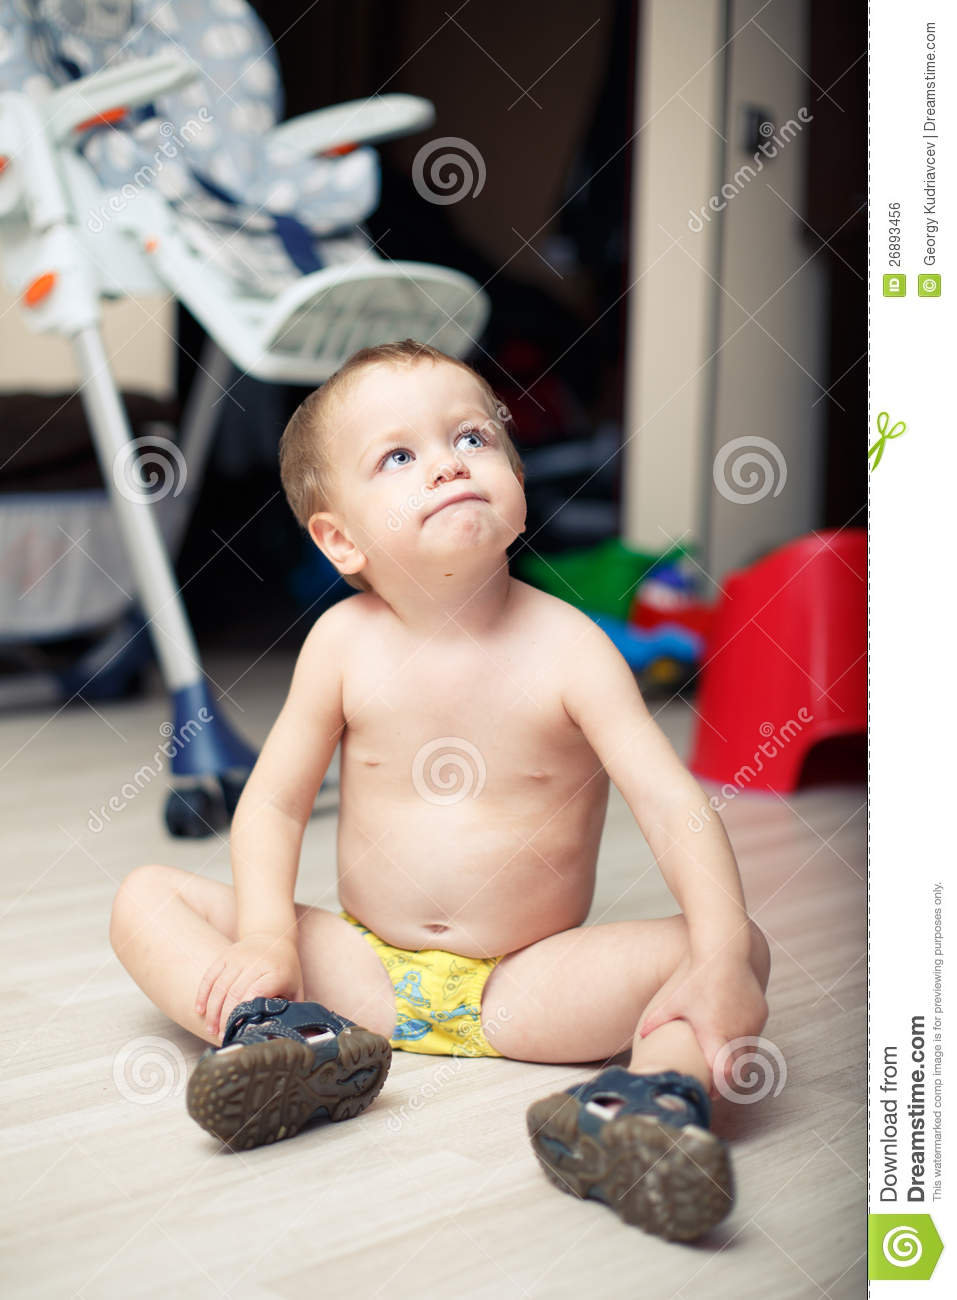 Funny Baby Boy Sitting Naked On The Floor Stock Photo -1069